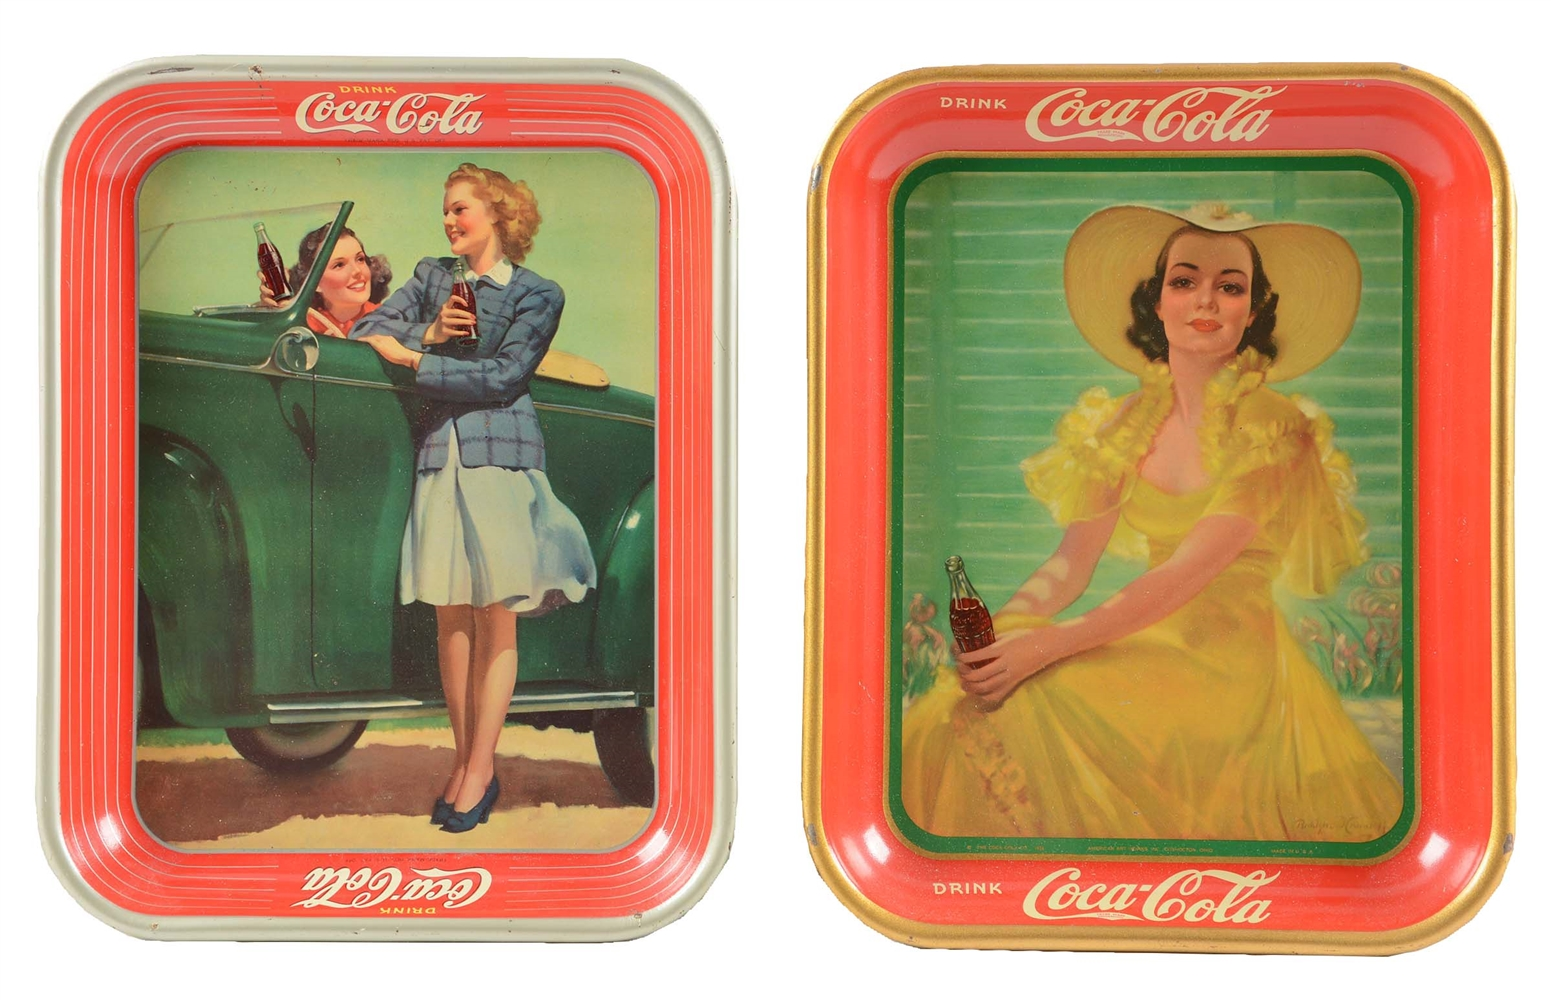 Lot Of 2: 1938 & 1942 Coca-Cola Advertising Trays.